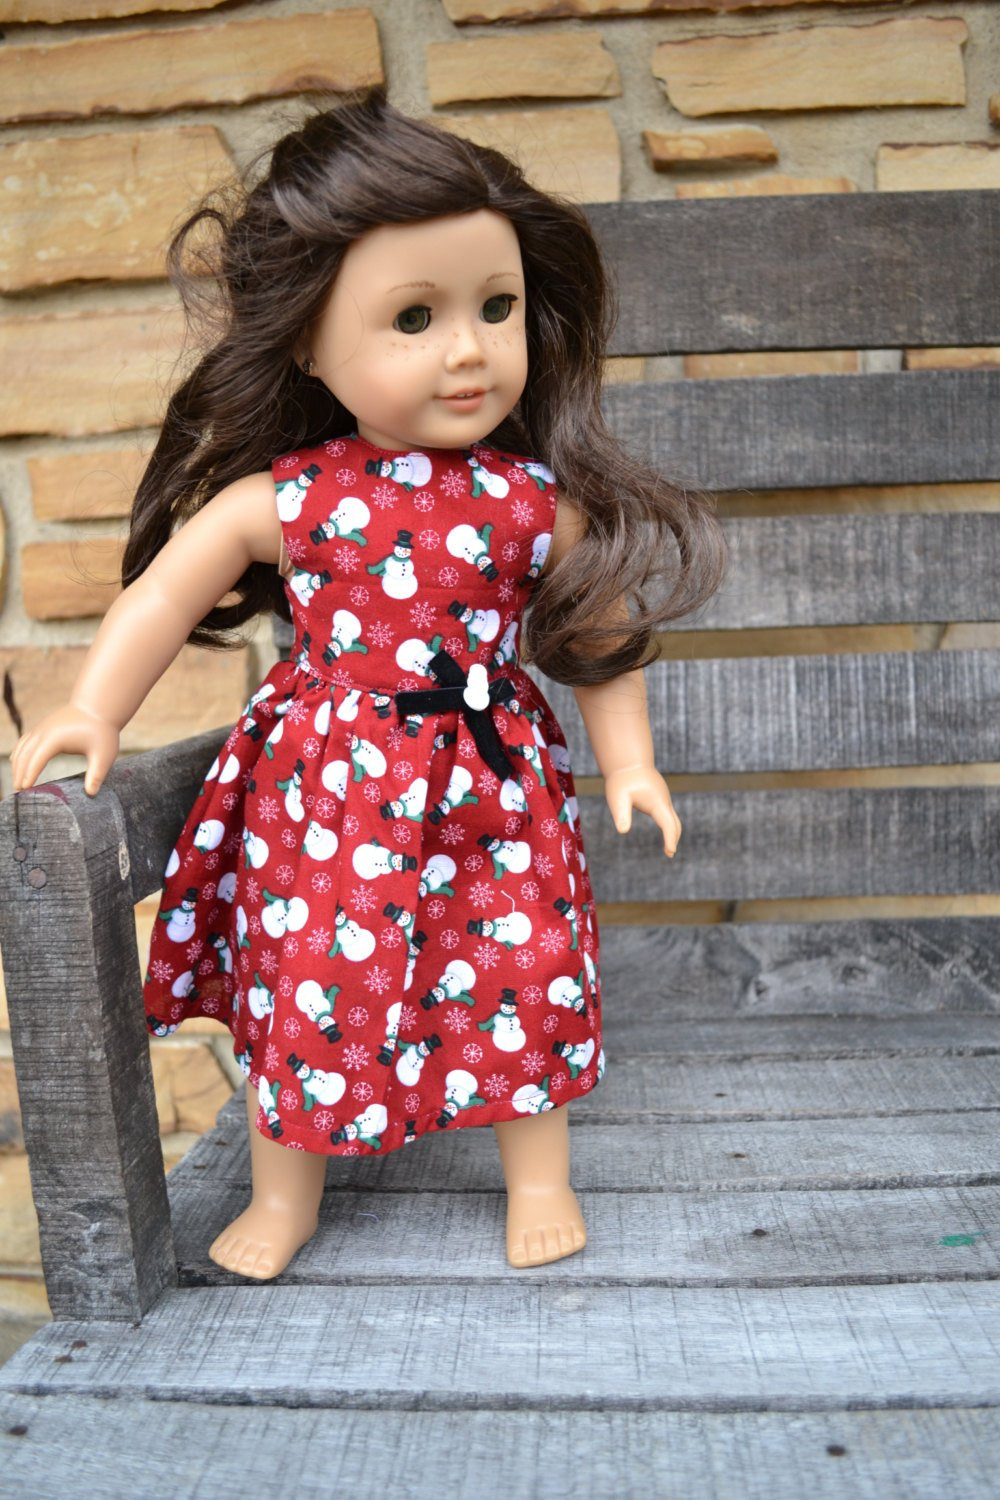 Awesome Camelot S Treasures American Girl Doll Clothes American Girl Doll Christmas Outfits Of Wonderful 40 Ideas American Girl Doll Christmas Outfits